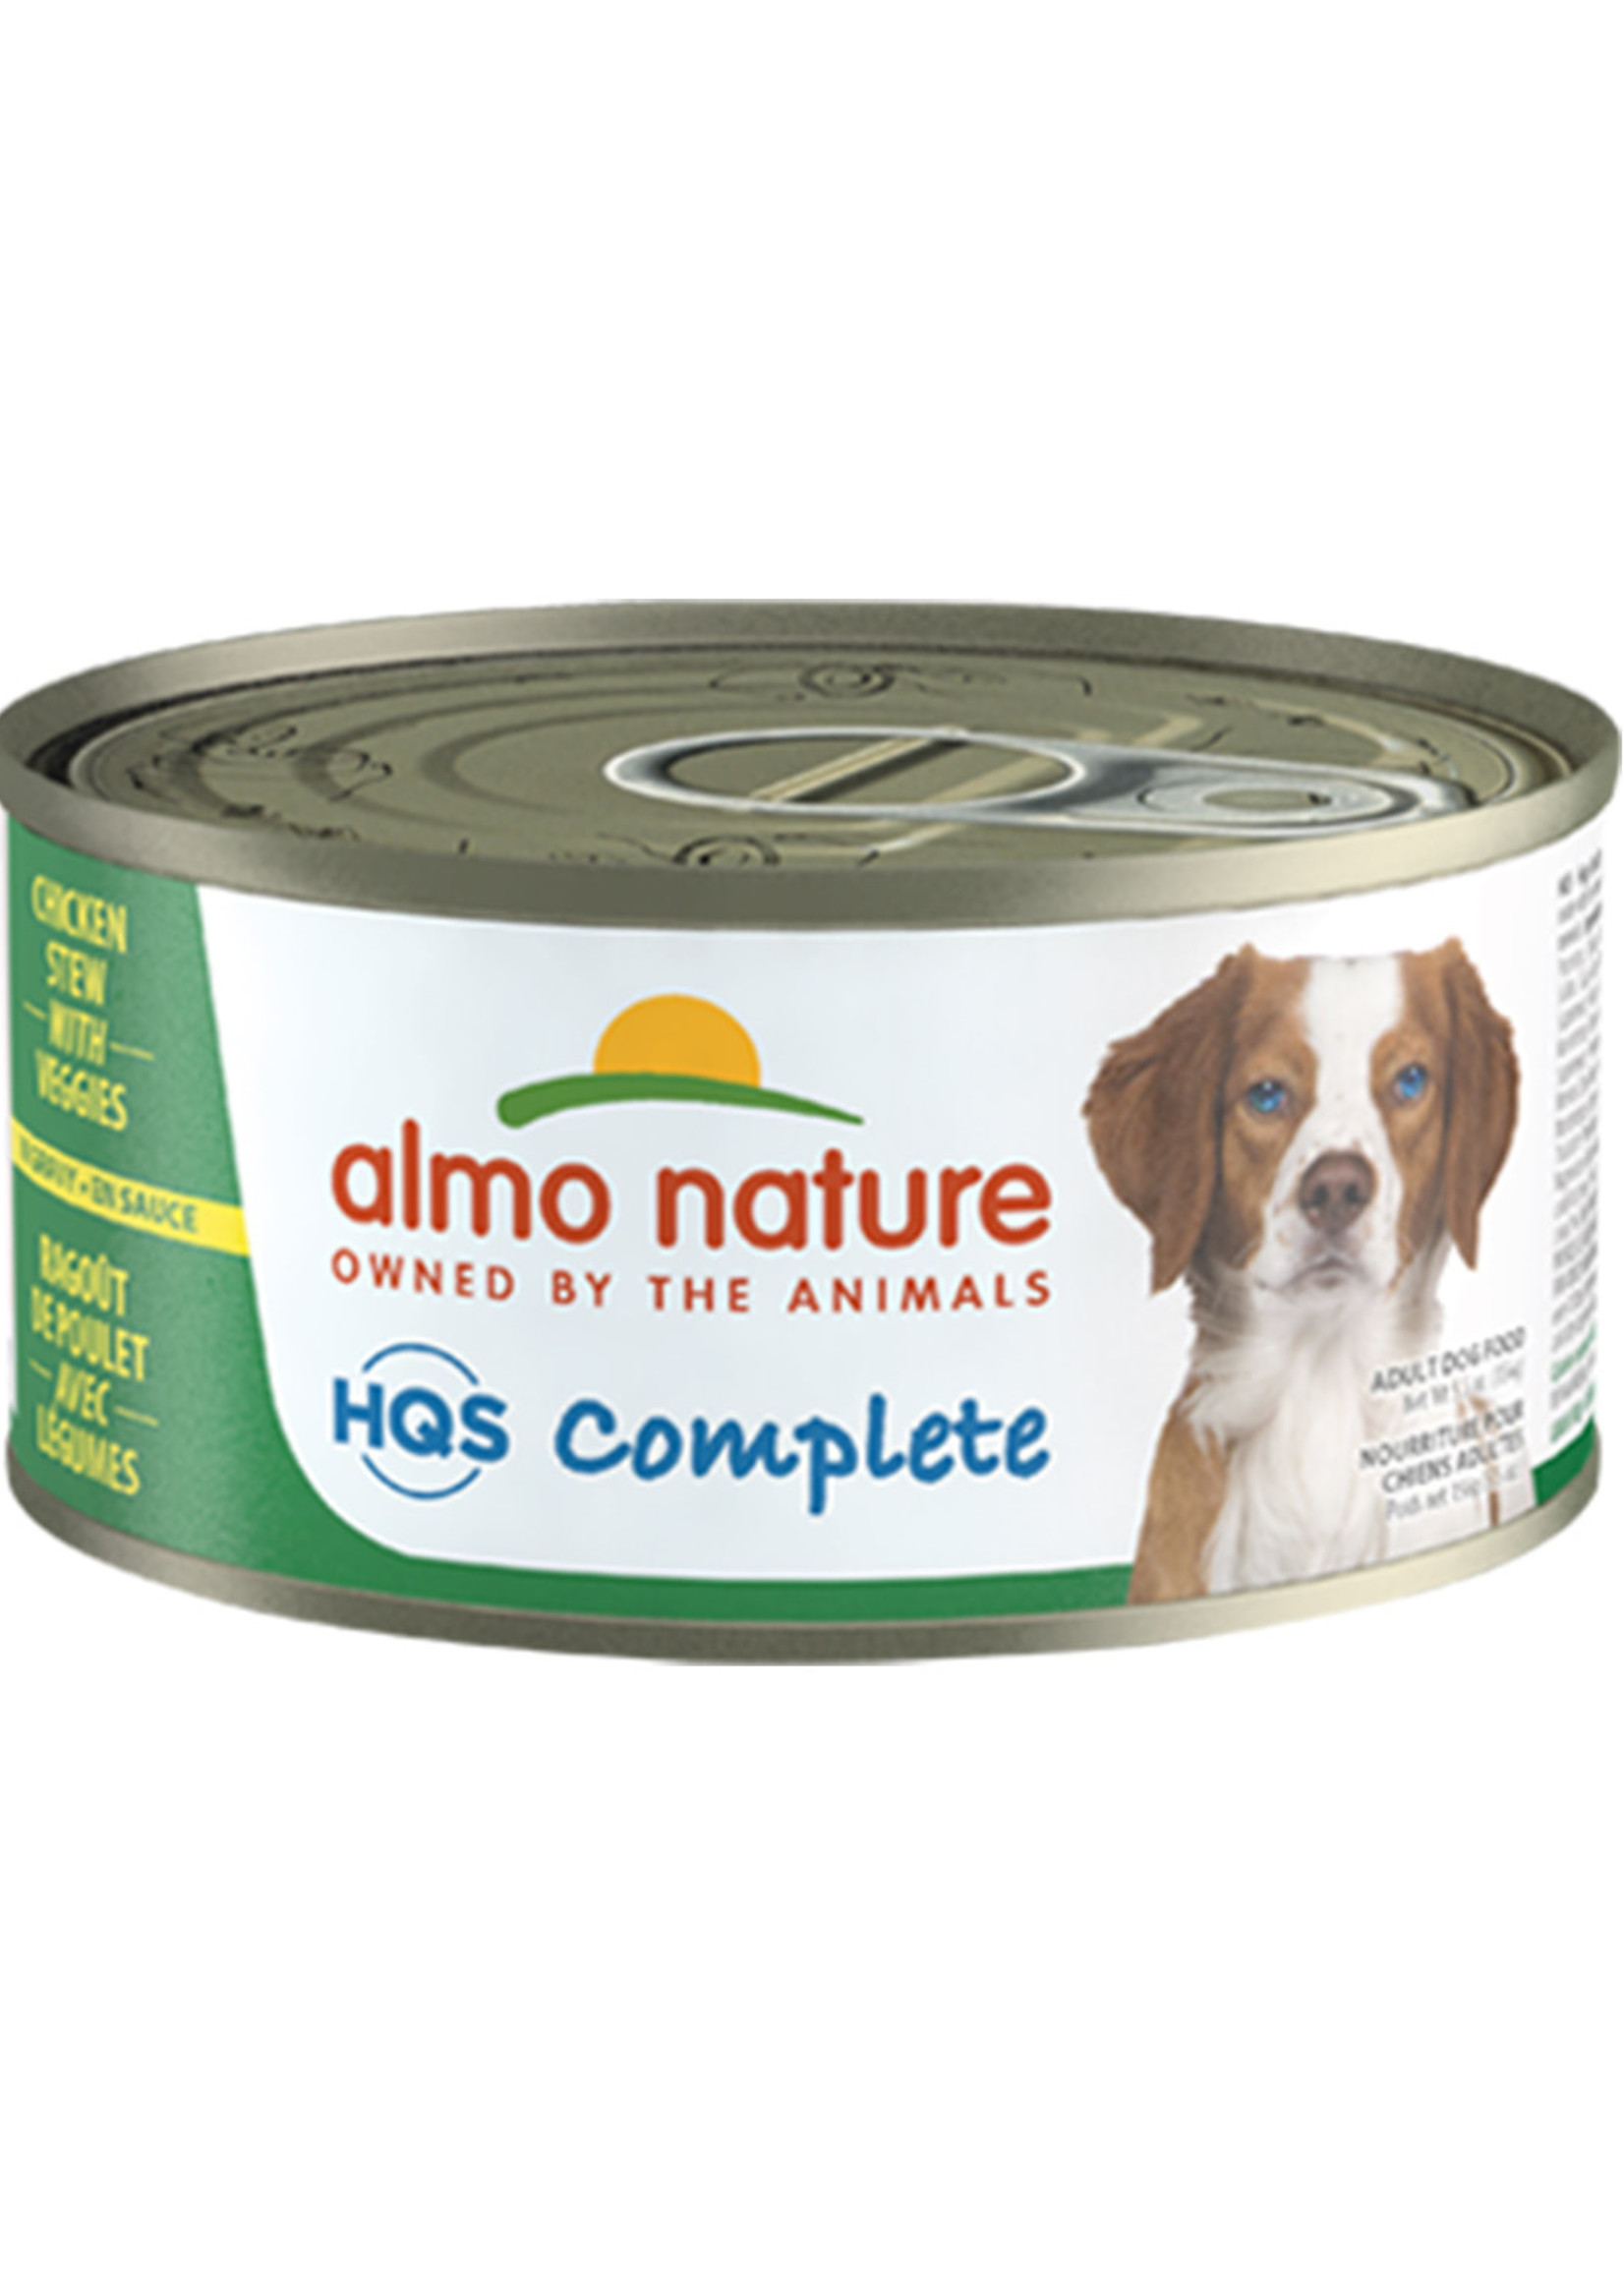 Almo Nature© Almo Nature HQS Complete Chicken Stew with Veggies 156g